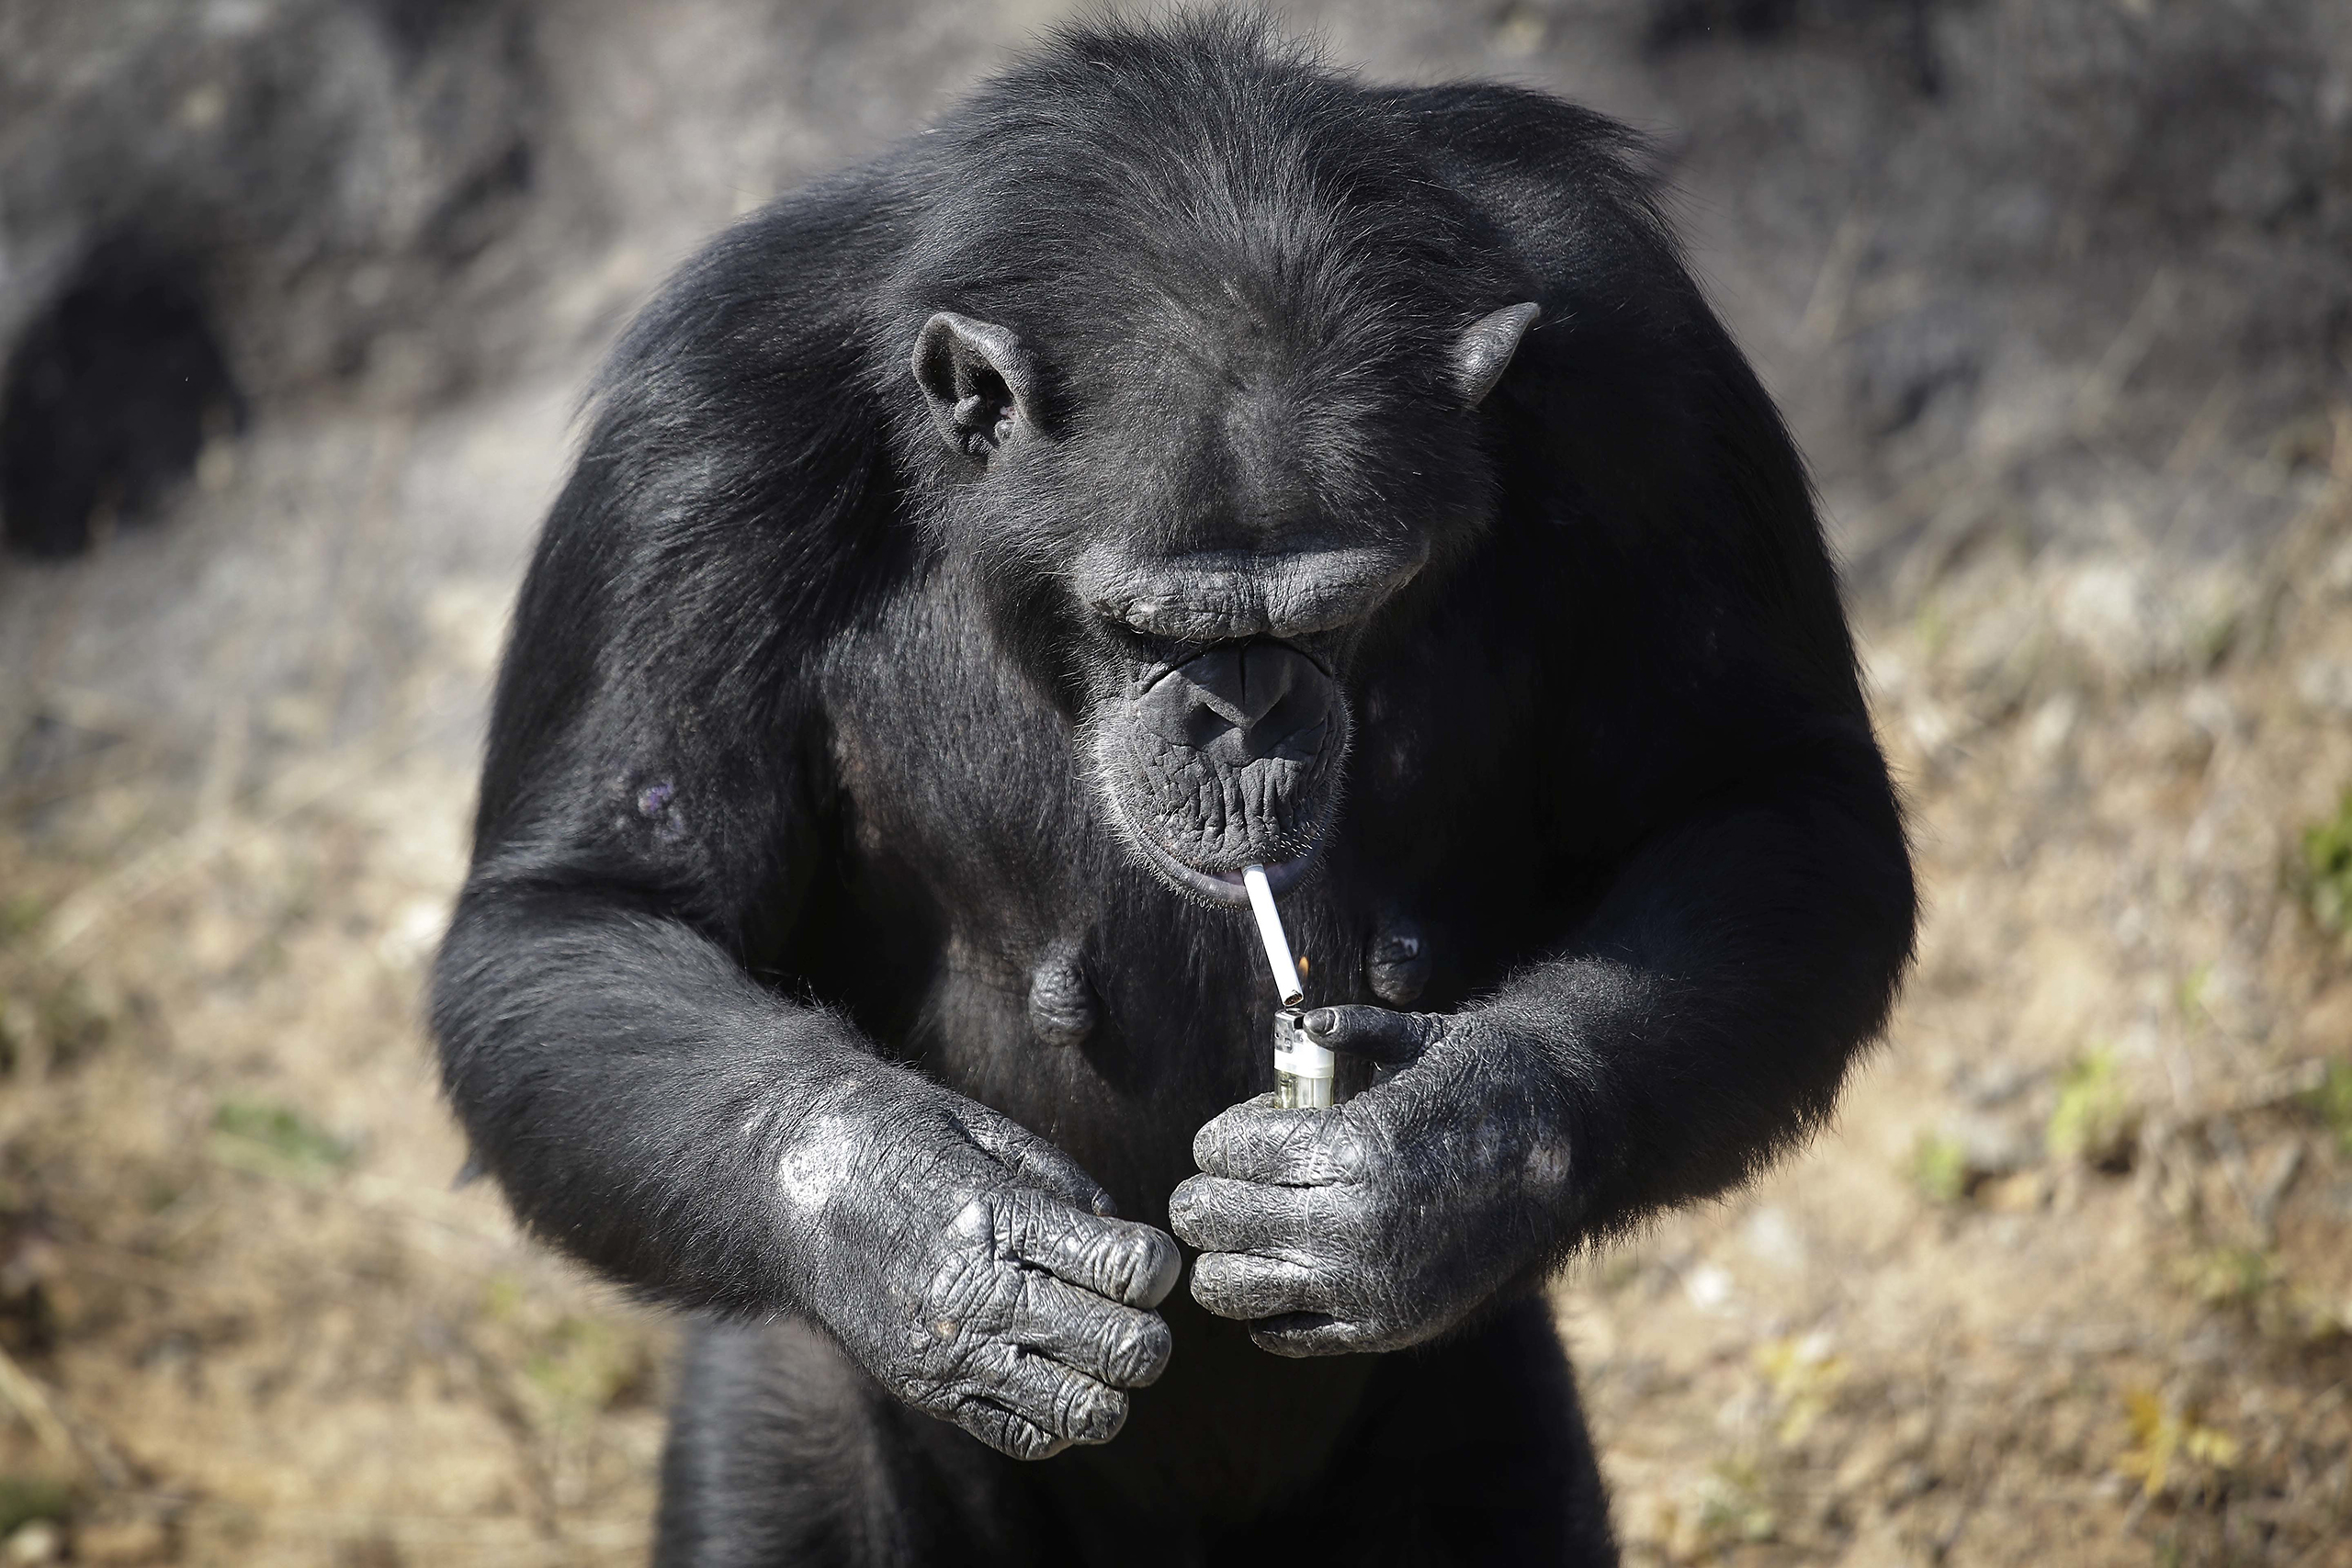 Azalea, a 19-year-old female chimpanzee whose Korean name is  Dallae,  lights a cigarette in her enclosure at the Central Zoo in Pyongyang, North Korea, on Oct. 19, 2016.